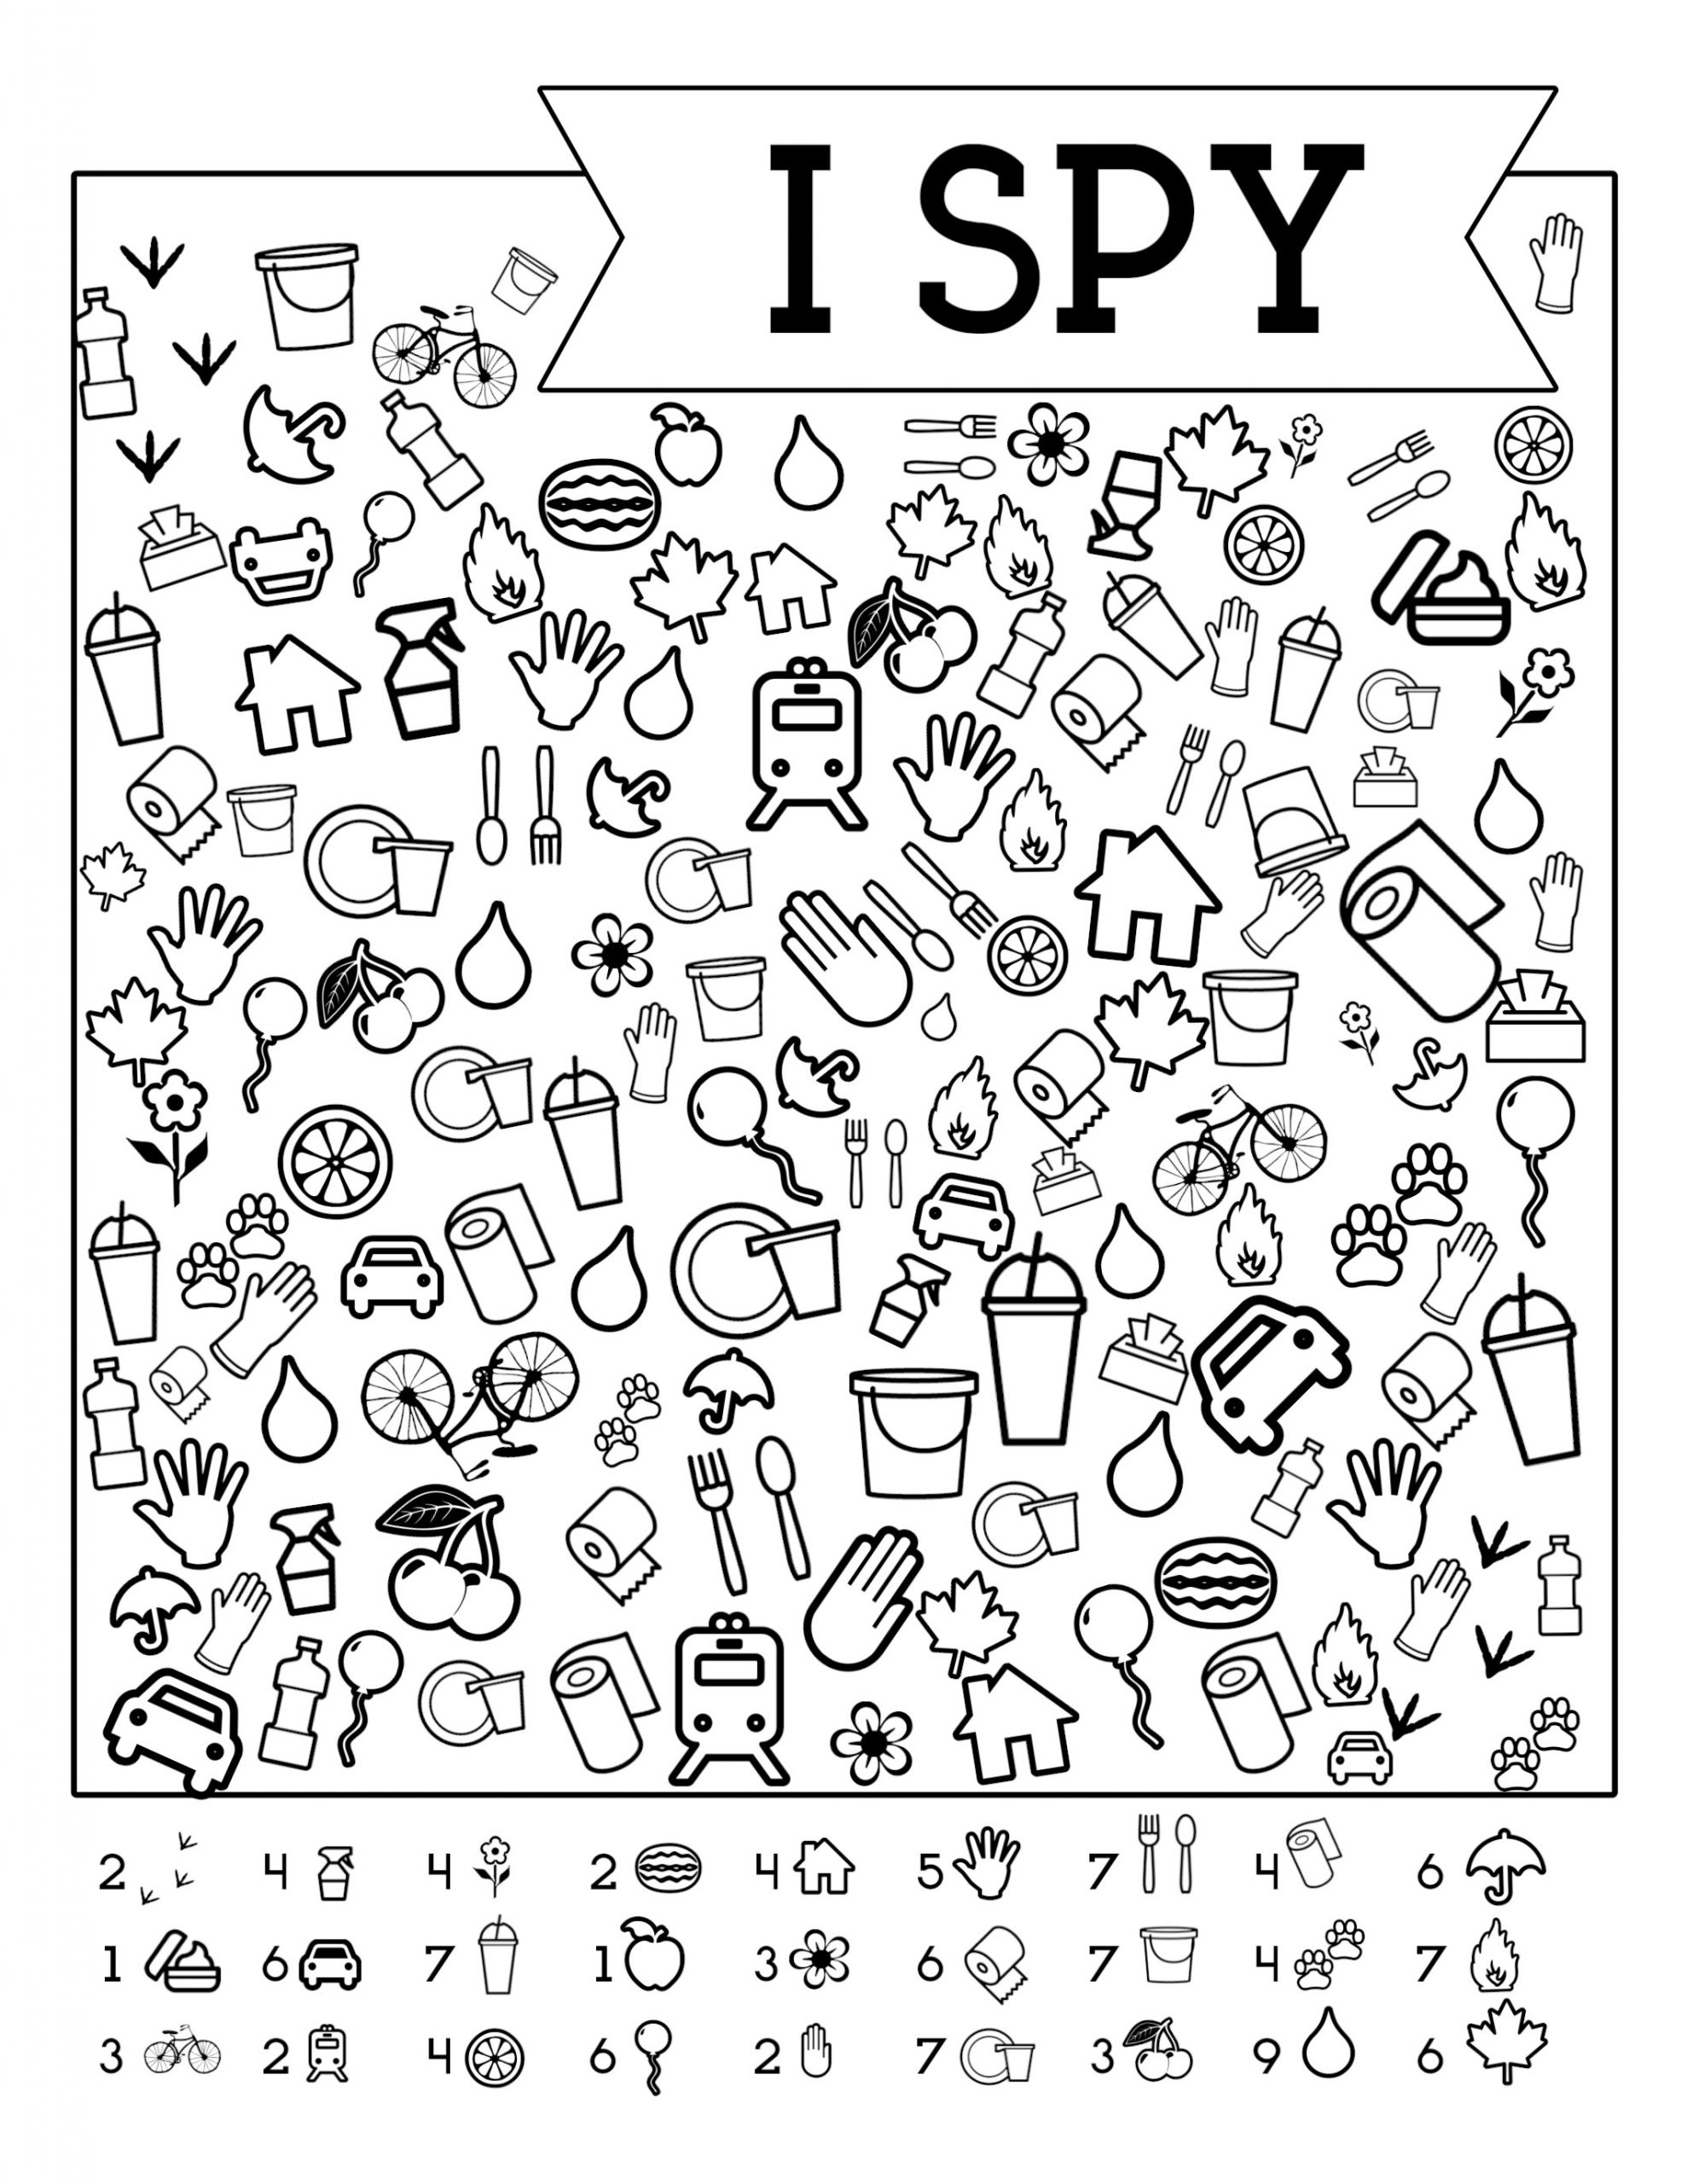 Printable I Spy Worksheets Free Printable Road Trip Games for Kids I Spy